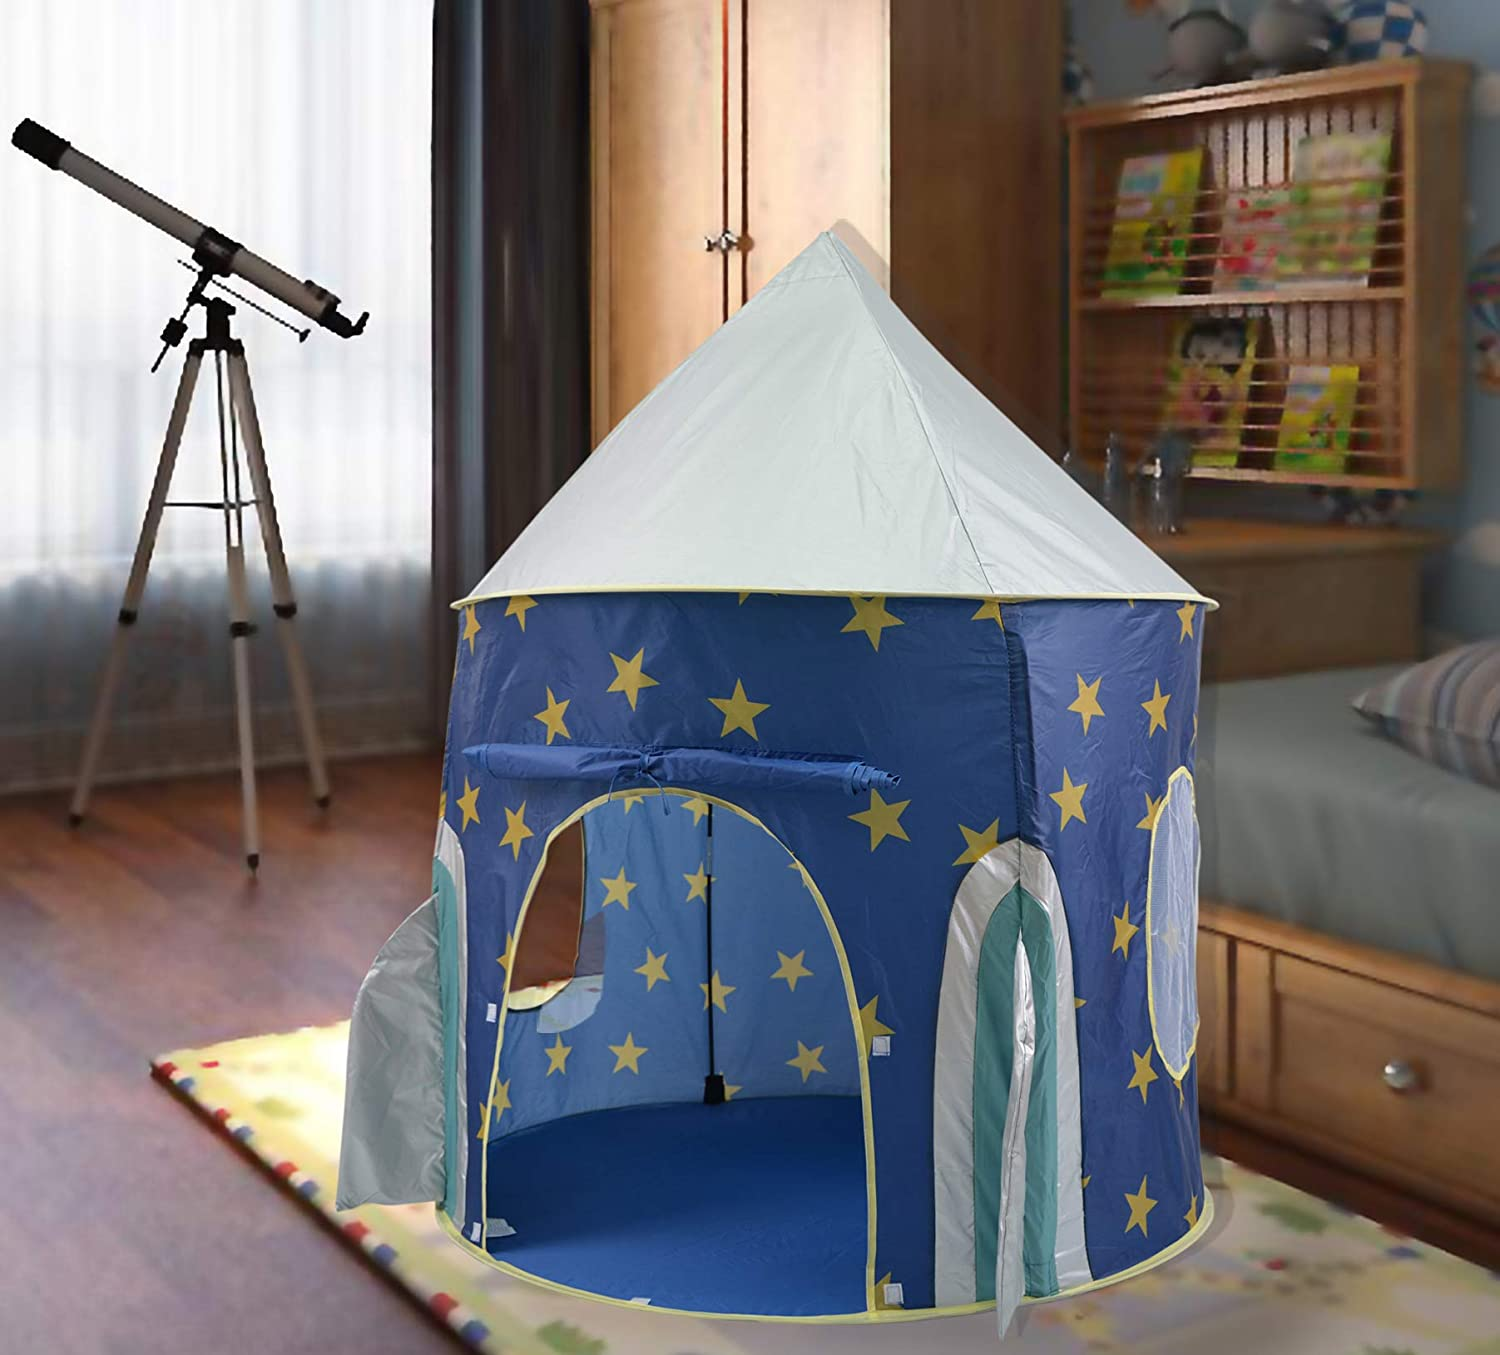 cheap for discount e74d5 a5d35 KiddyPlay Deluxe UV Sun Safe Blue Pop-Up Space Rocket Play Tent - Childrens  Indoor or Outdoor Garden Playhouse - Boys Wendy House